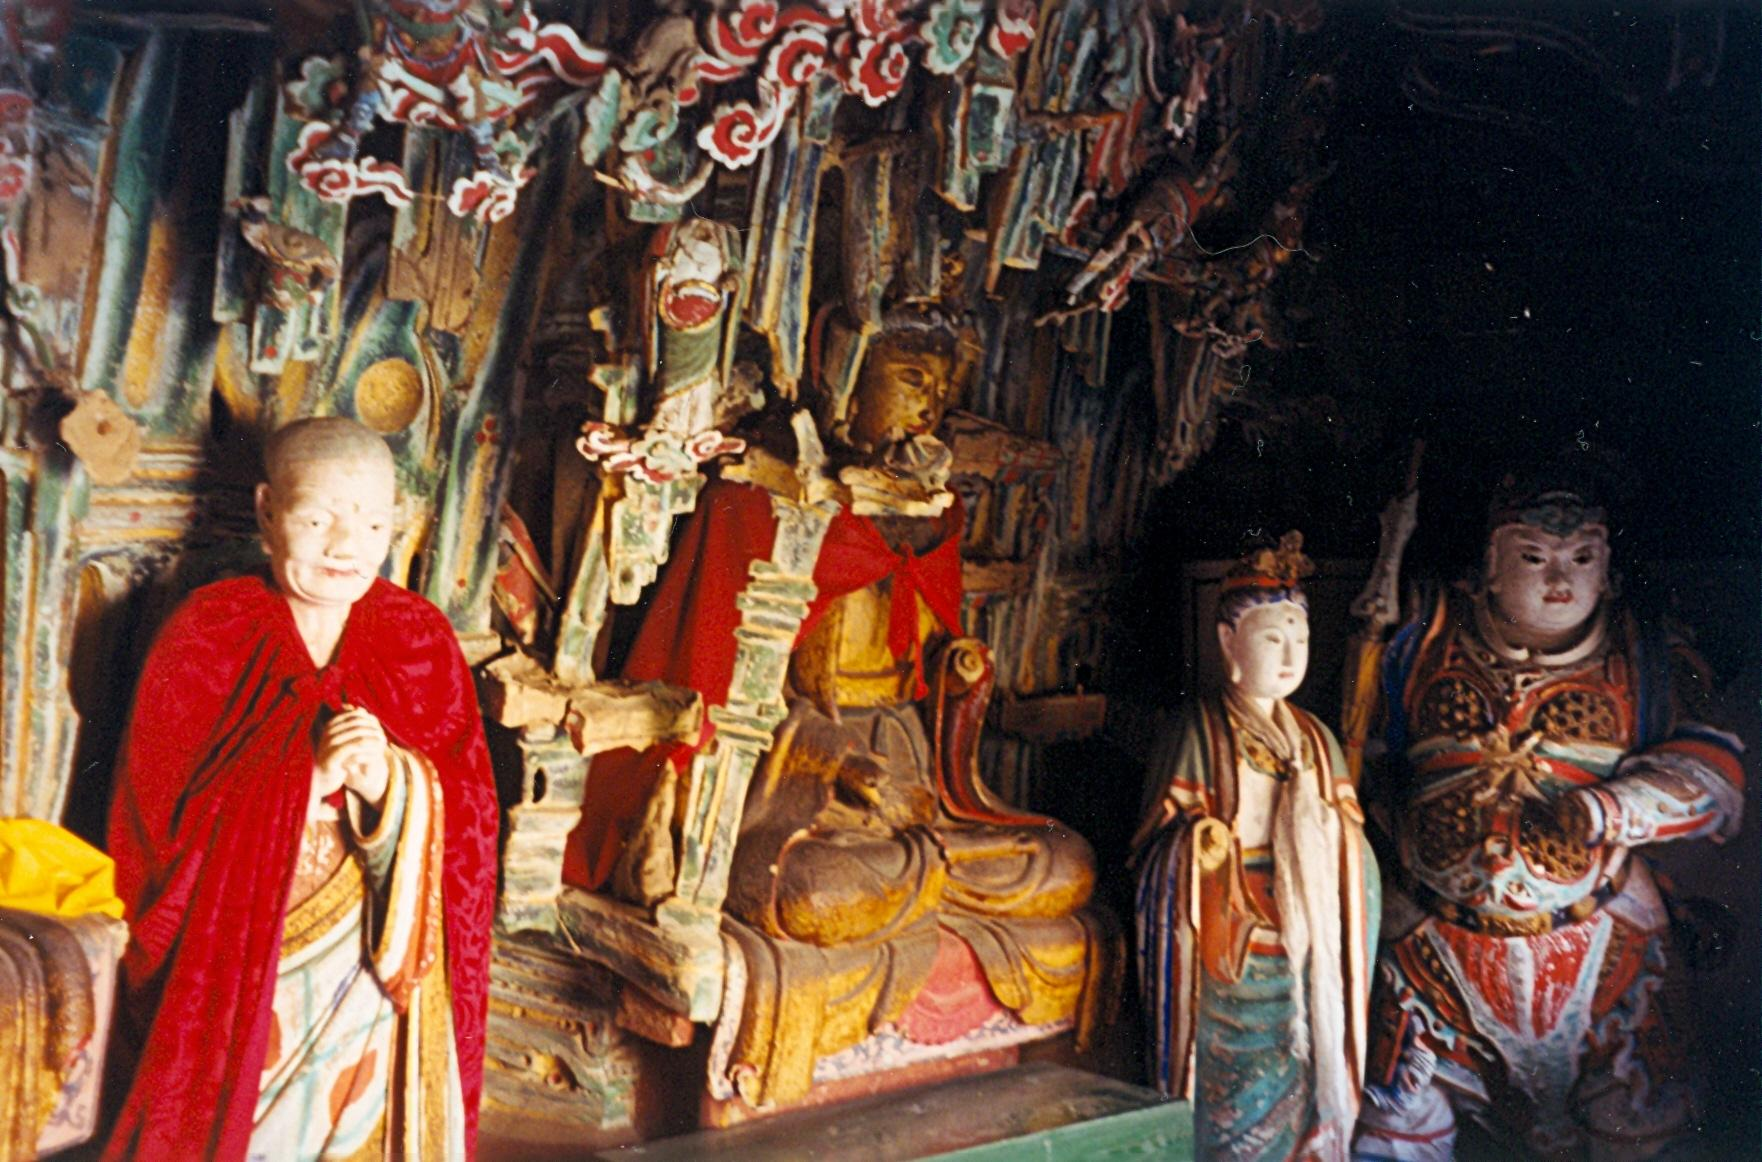 """At its highest peak is the main hall, the """"Sanjiao Temple"""", with a Sakyamuni Buddha sitting in the center, Confucius on the left, and a Taoist Sovereign on the right. (Image: Doron via wikimedia CC BY-SA 3.0)"""